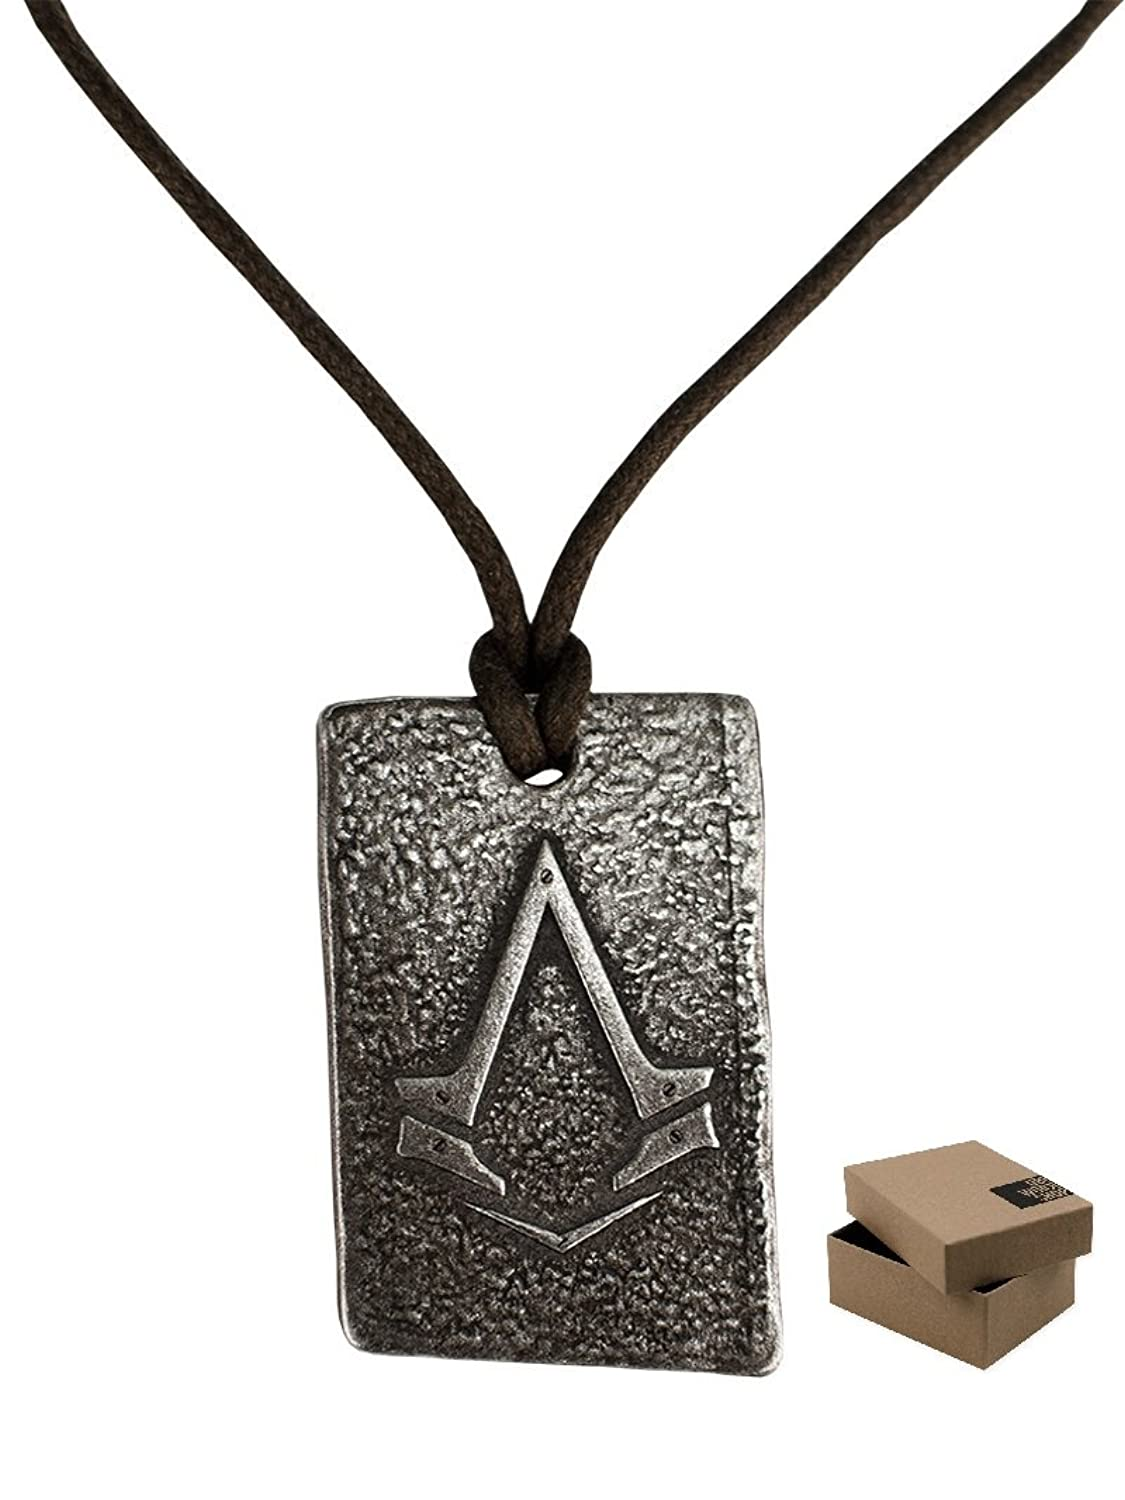 Assassin's Creed Syndicate: The Rooks Necklace